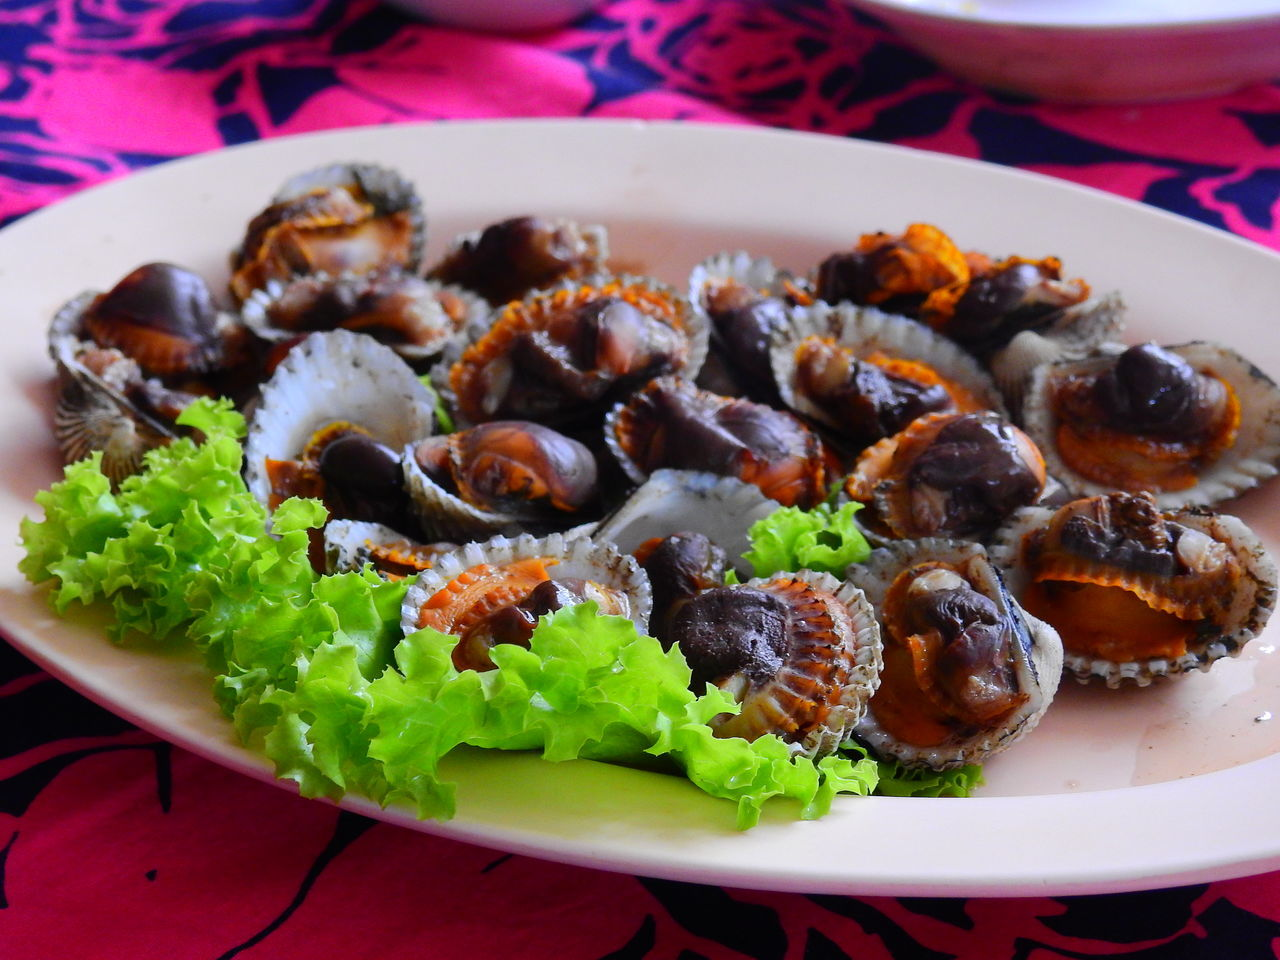 Grilled cockles. Bangkok. Thailand. Cockles Scallop Ready-to-eat Healthy Eating Close-up Freshness Indoors  Food No People Day Focus On Foreground EyeEm Best Edits OpenEdit Travelling Thailand EyeEmBestPics EyeEm Best Shots Taking Photos Hello World! Enjoying Life Sea Food Photography Sea Food Restaurant Sea Food Eyeem Photography Plate Food And Drink